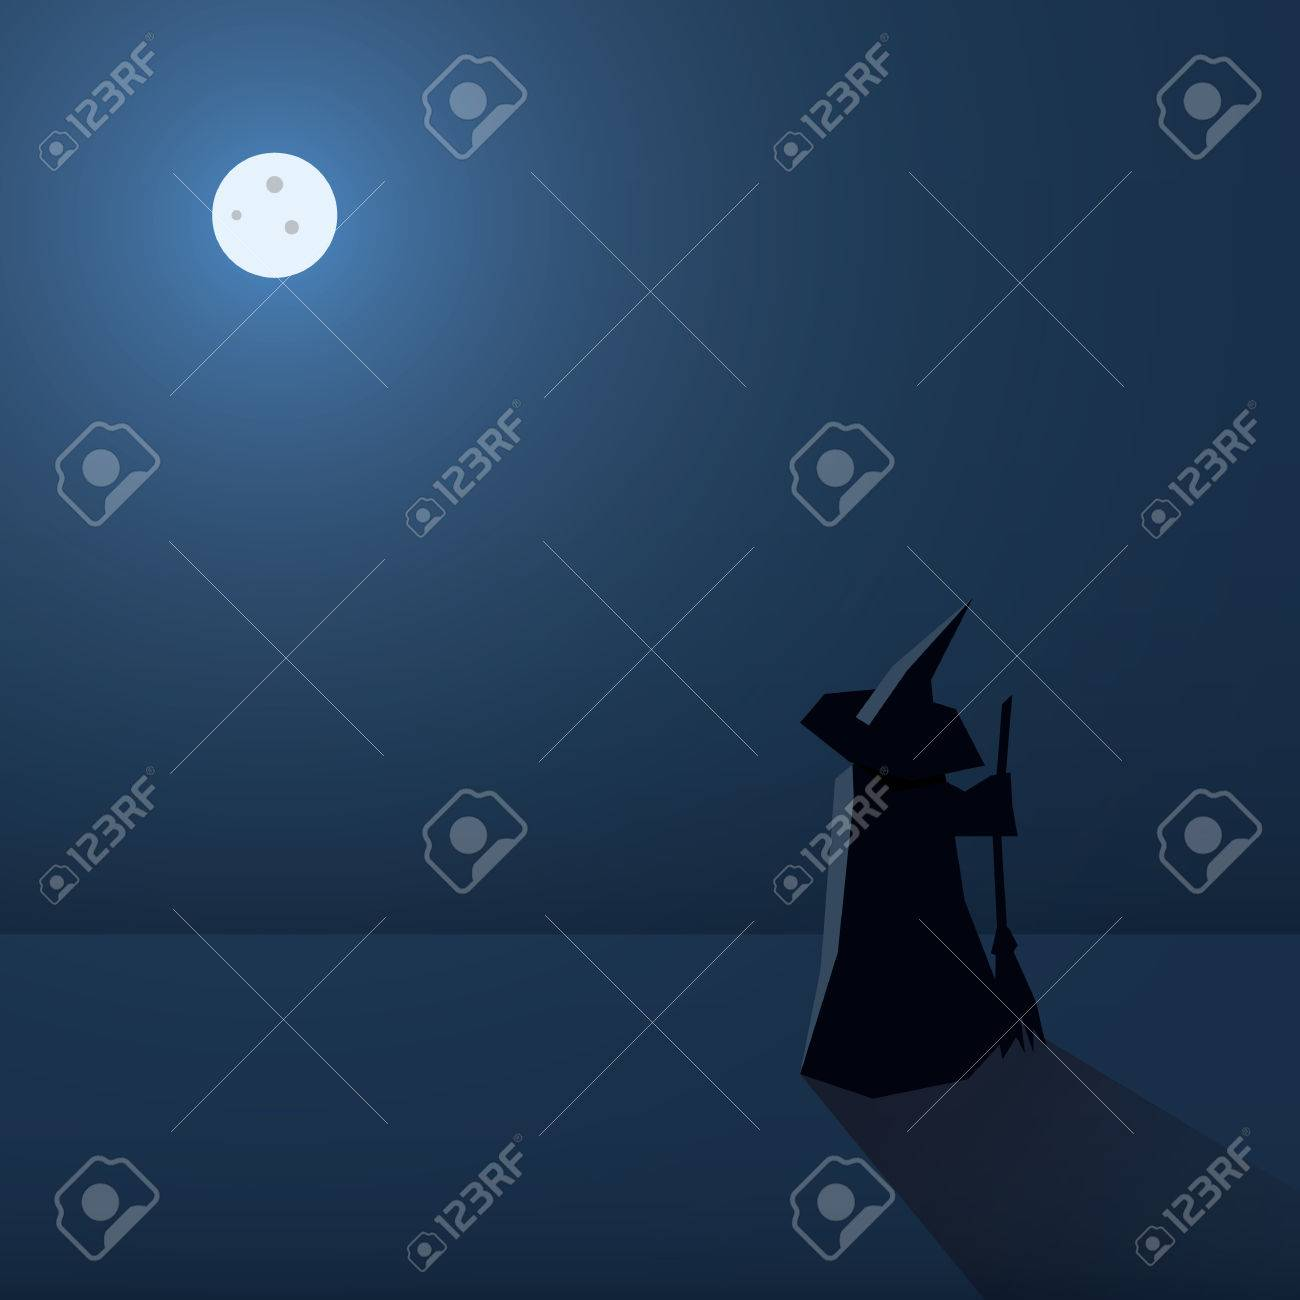 scary halloween card vector background holiday poster template scary halloween card vector background holiday poster template witch silhouette and space for text